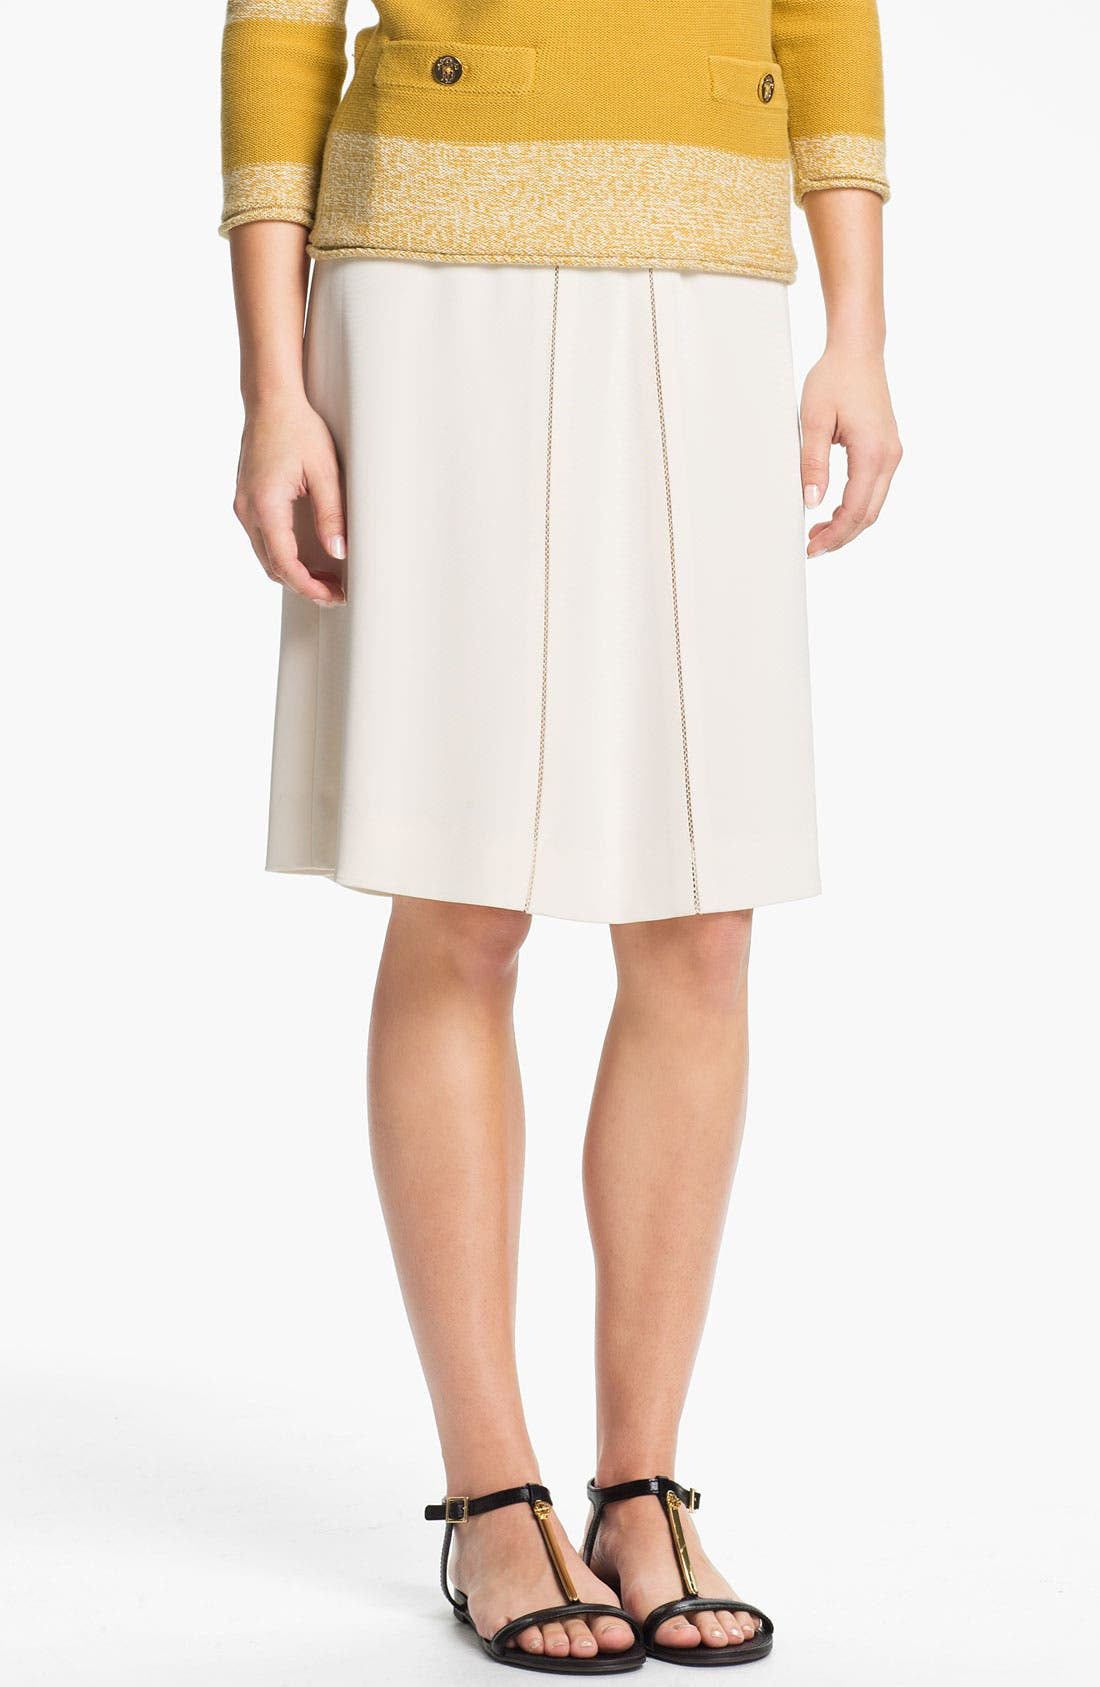 Main Image - Tory Burch 'Alton' Skirt